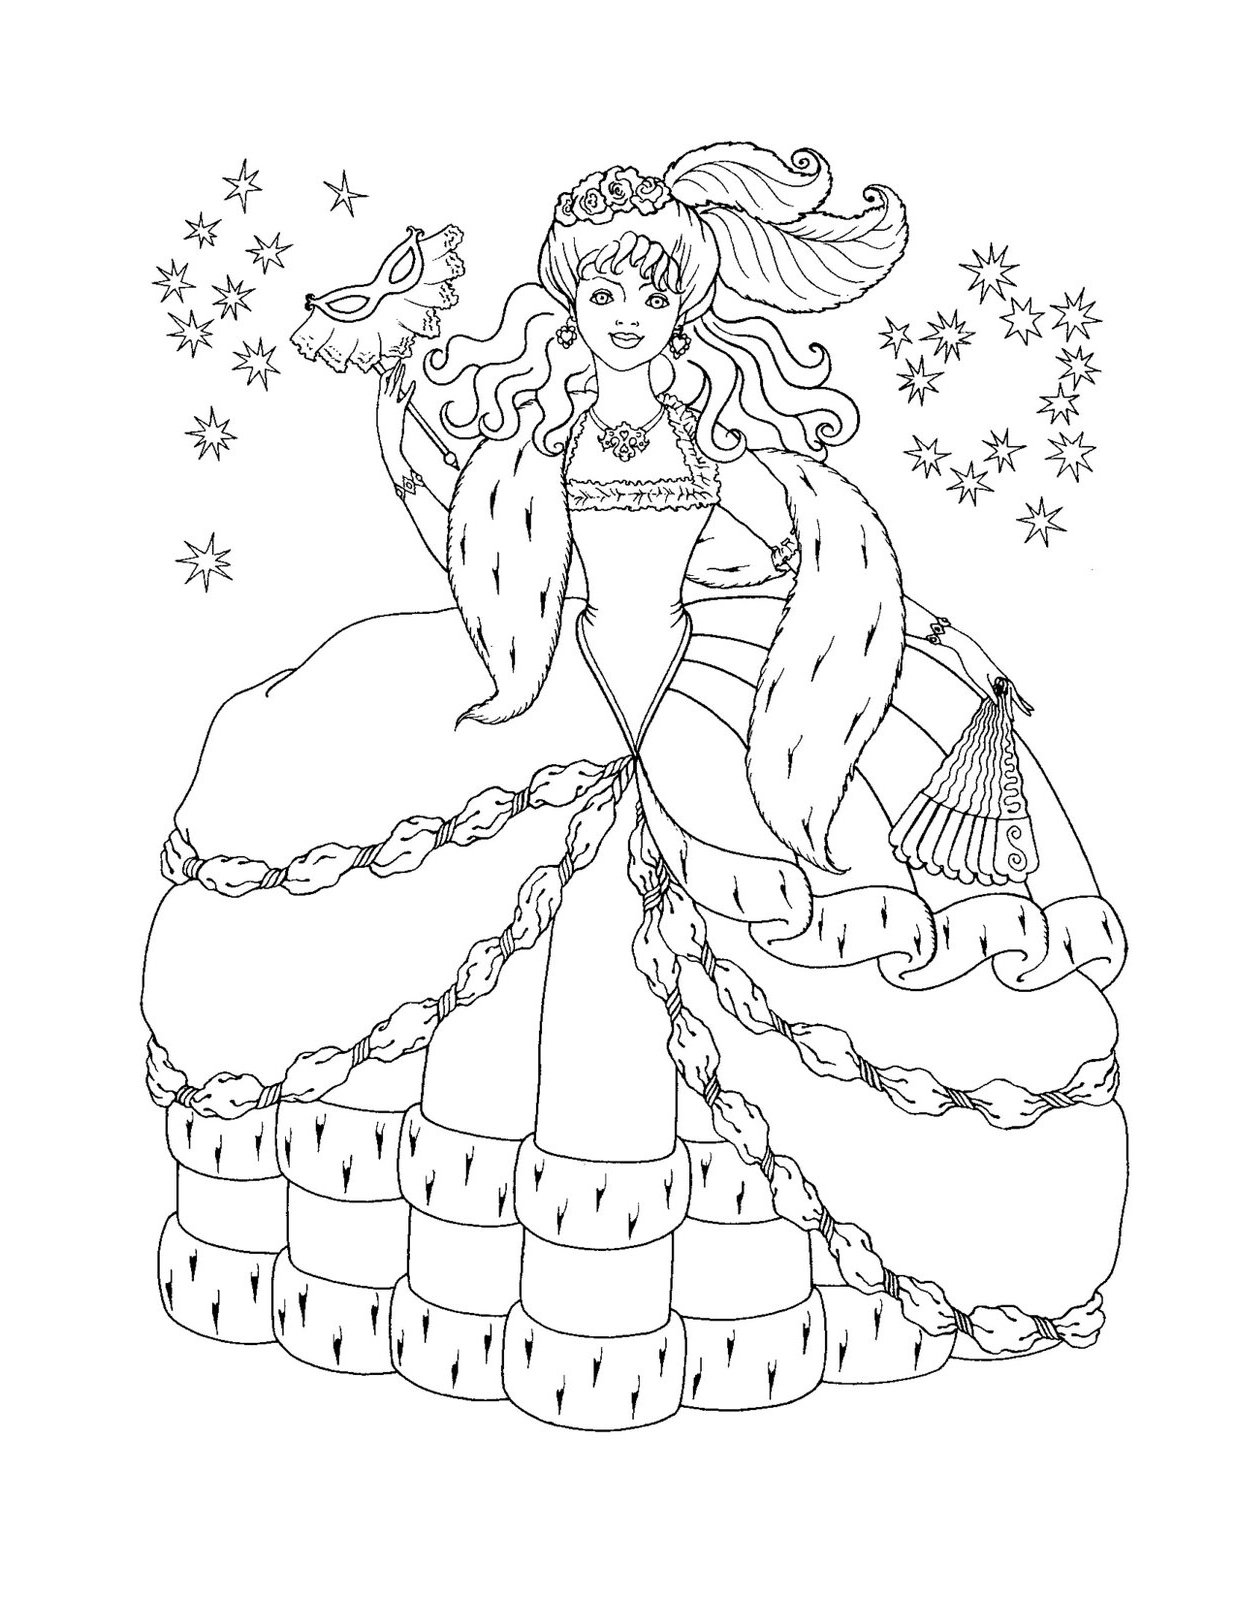 ice queen coloring pages the snow queen coloring pages download and print for free queen ice coloring pages